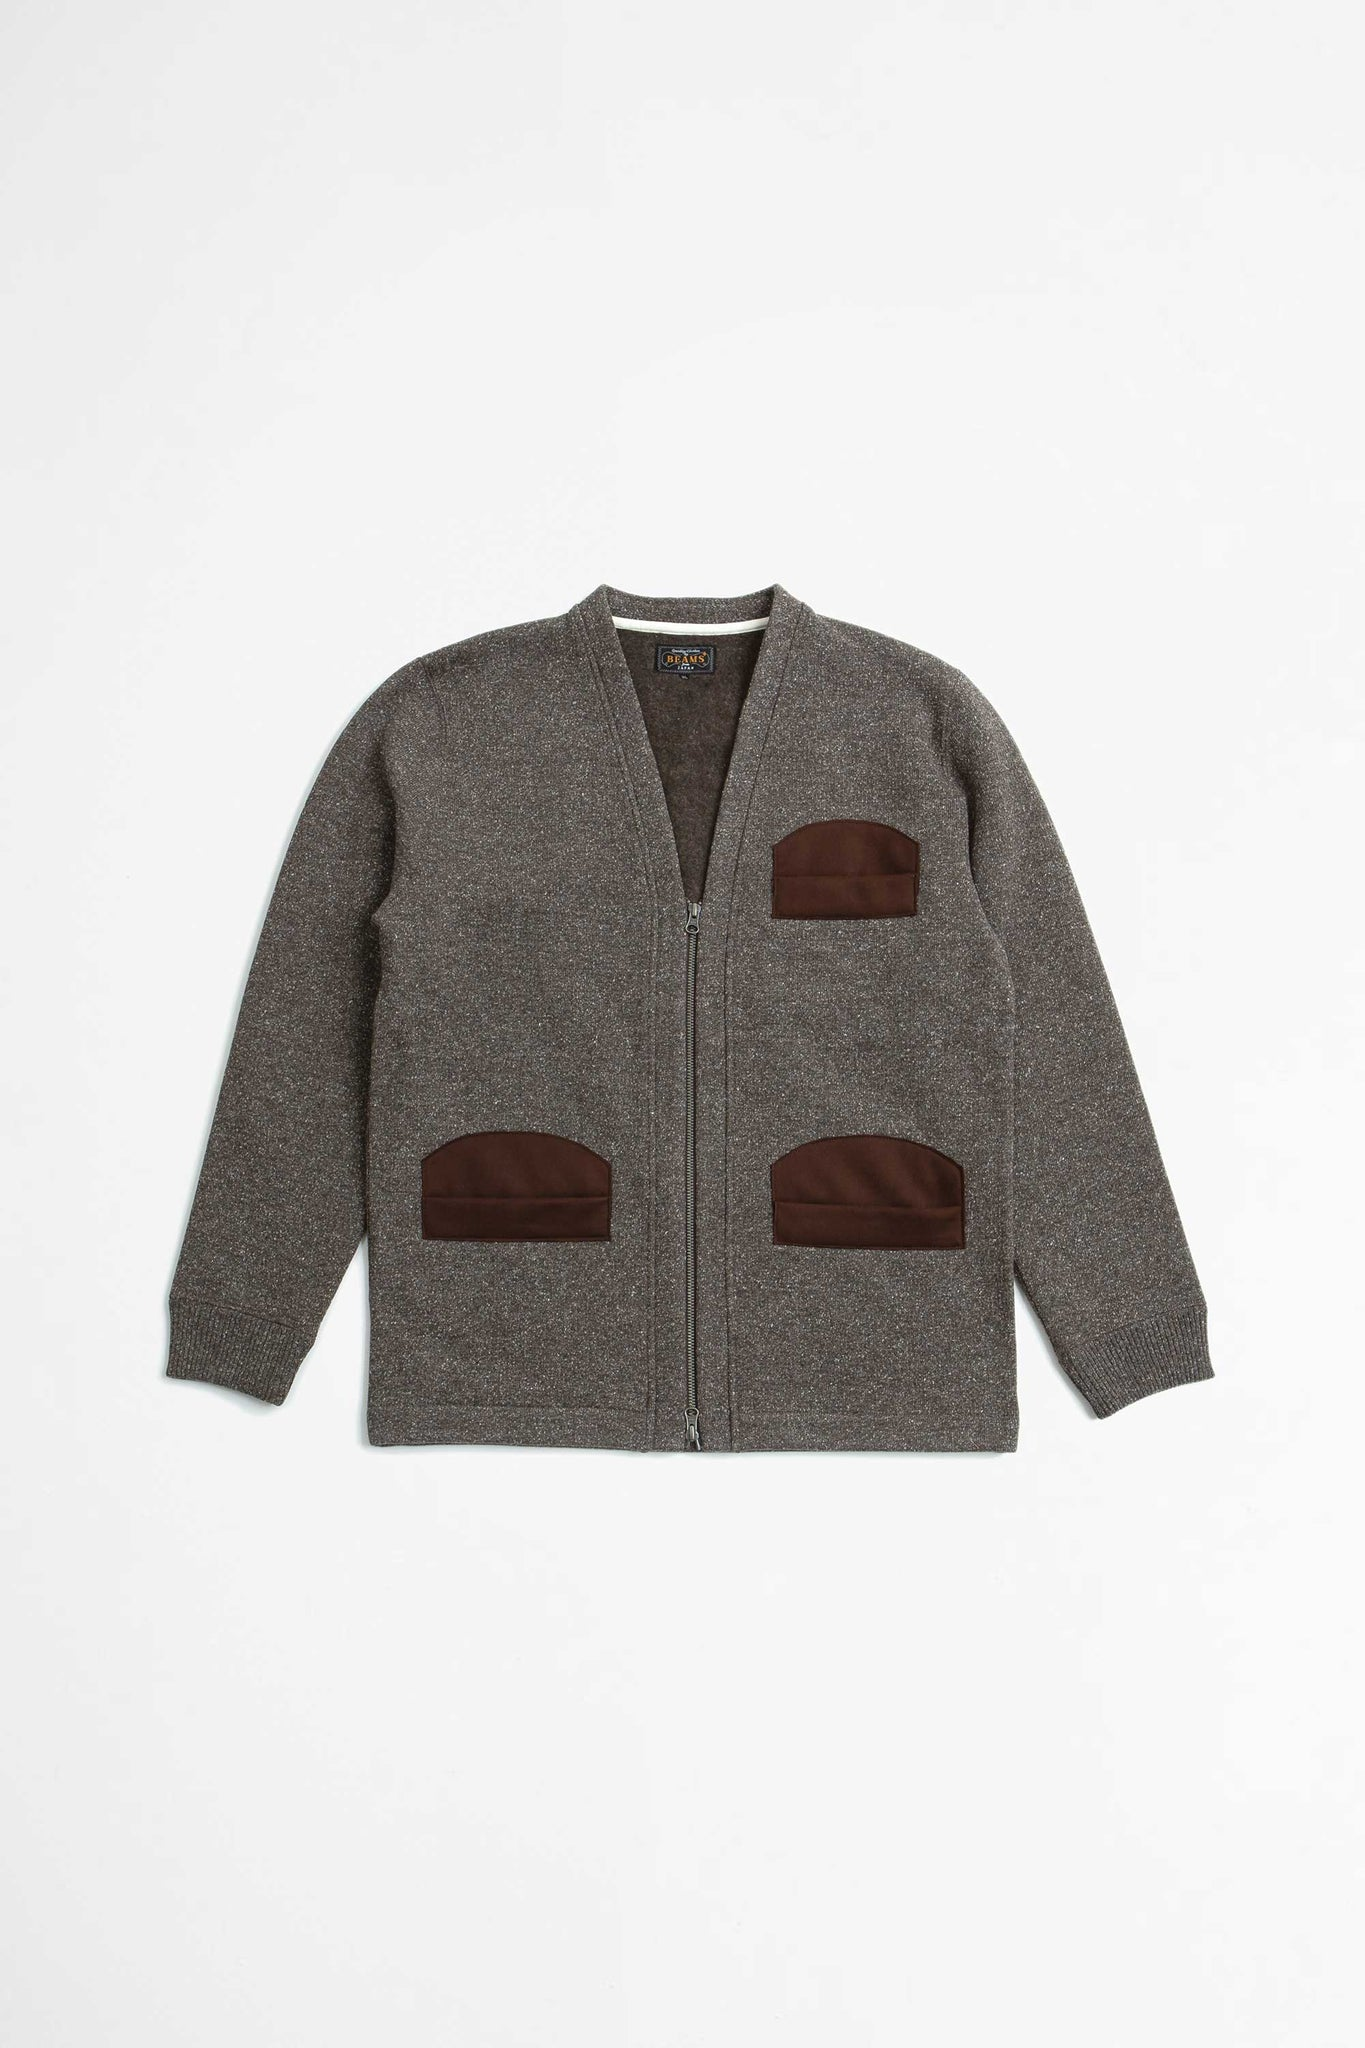 Hunting cardigan jazz brown